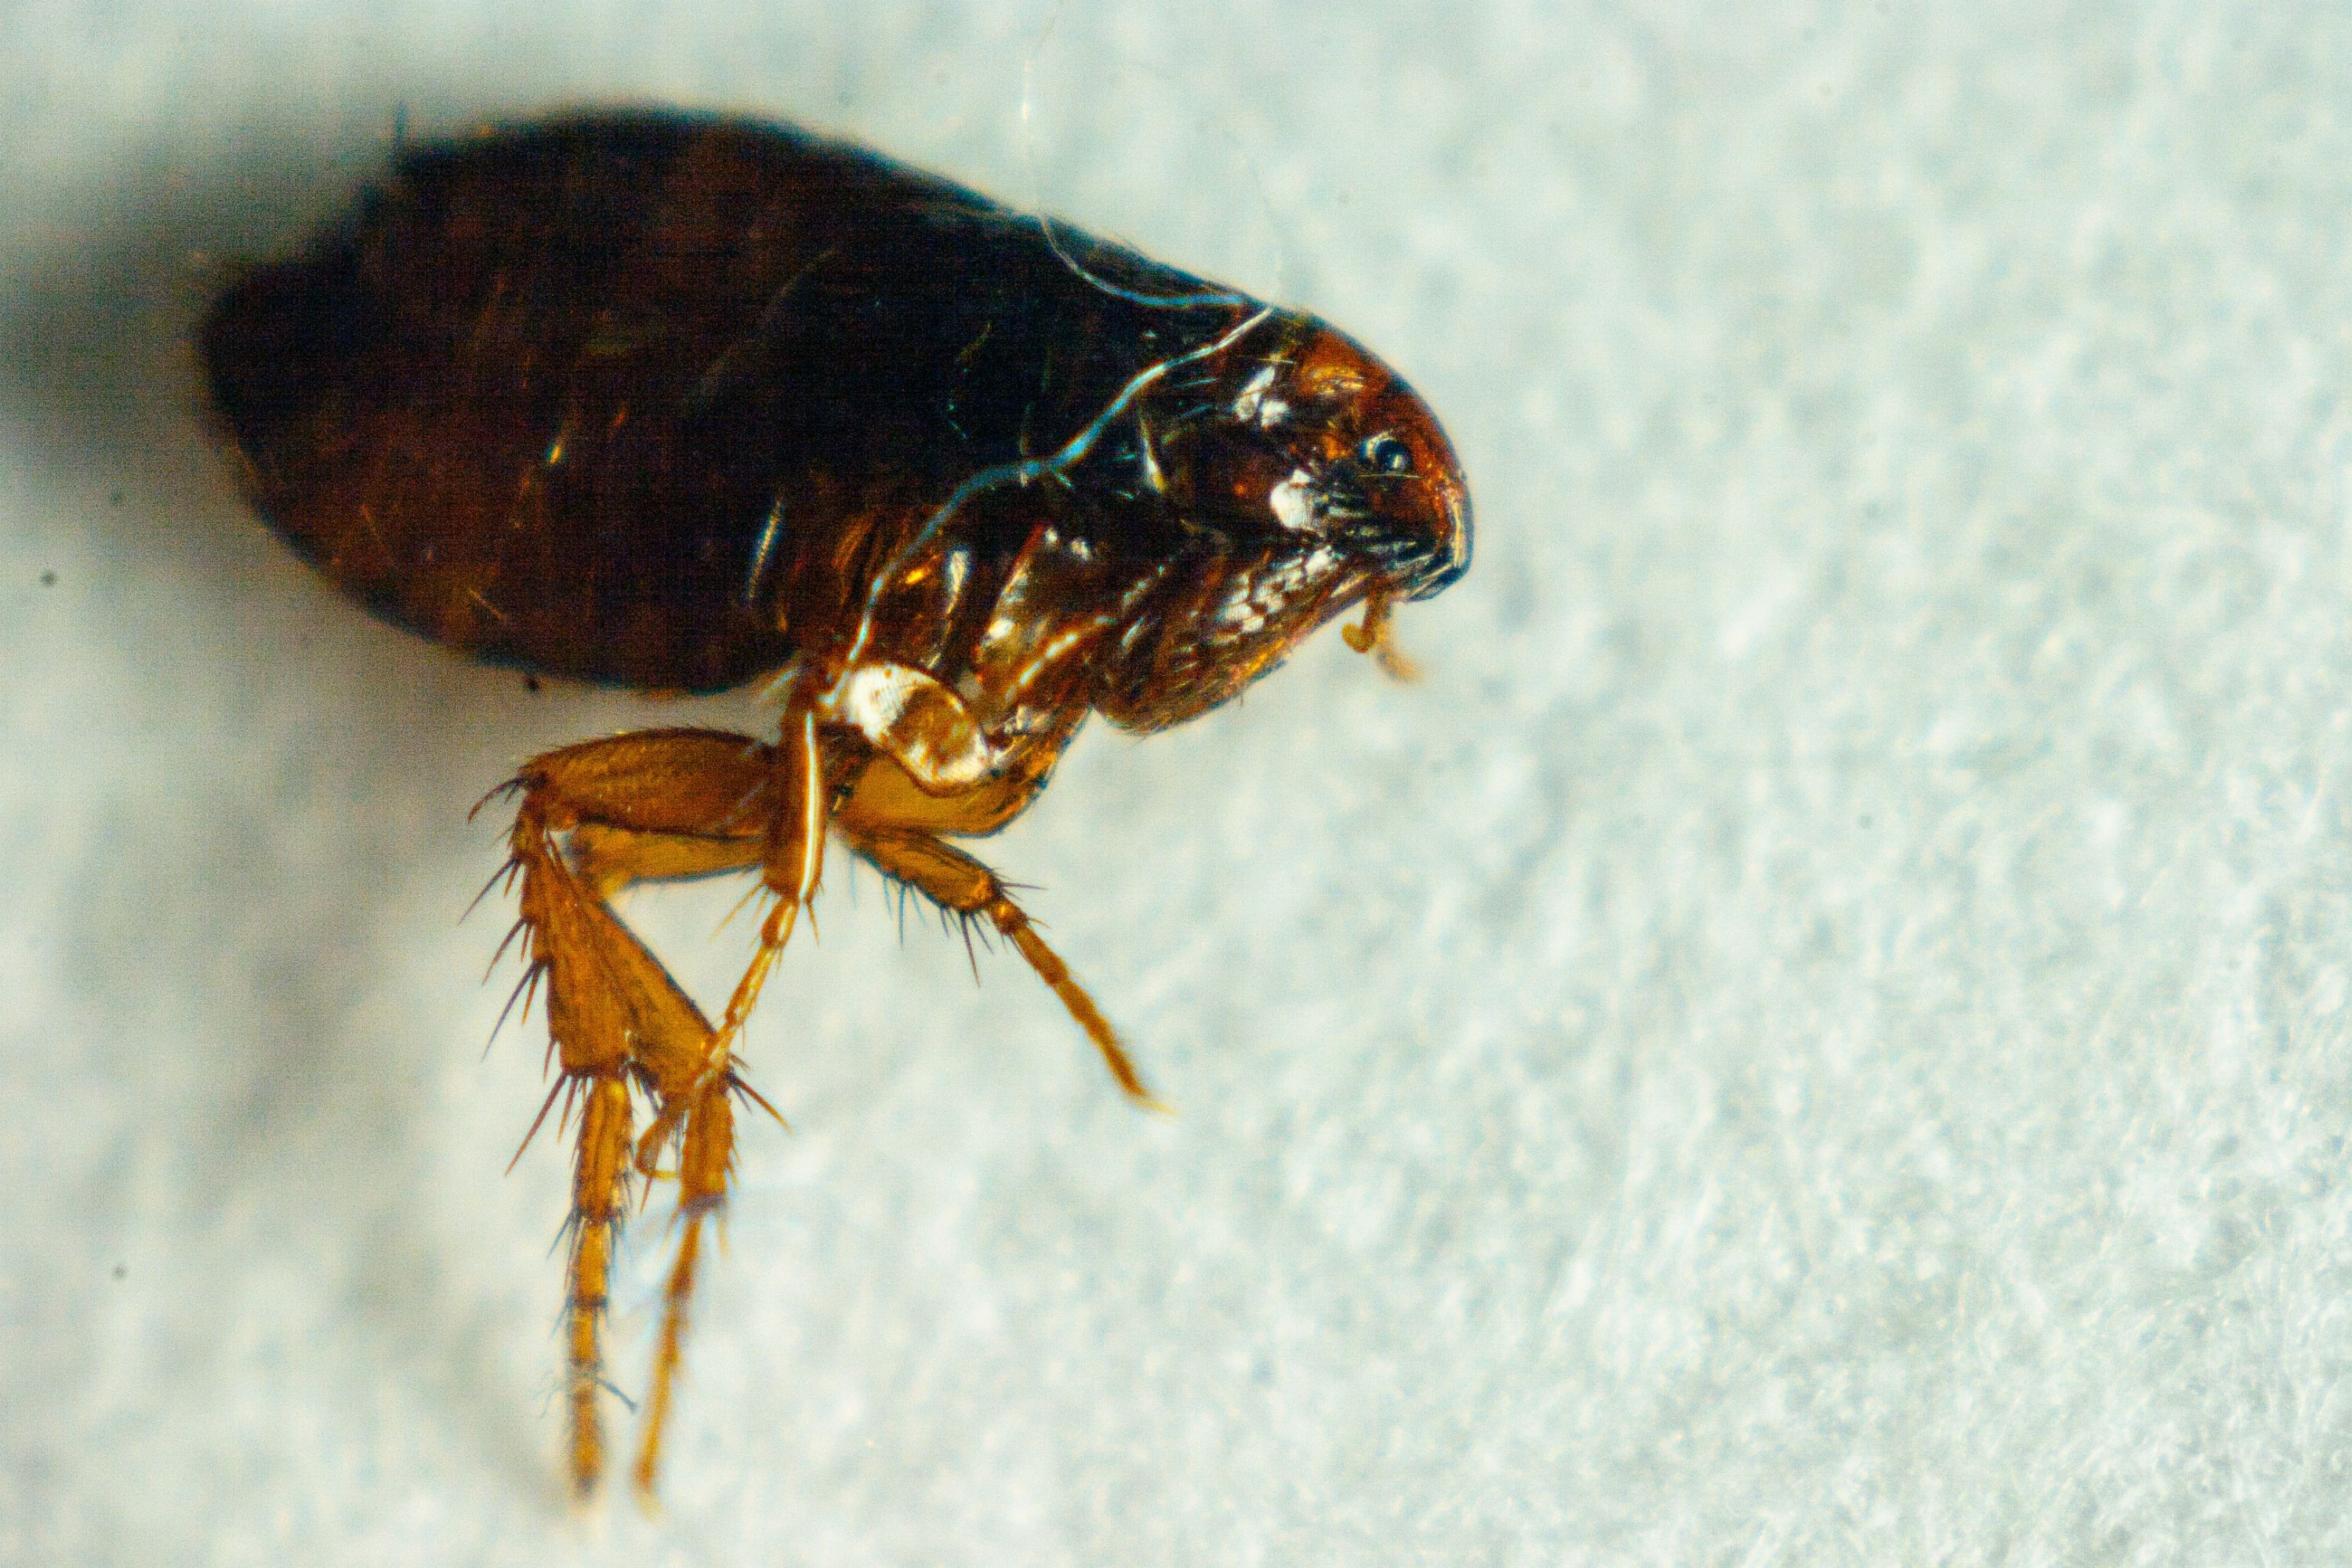 Small Black Bugs In the House fleas